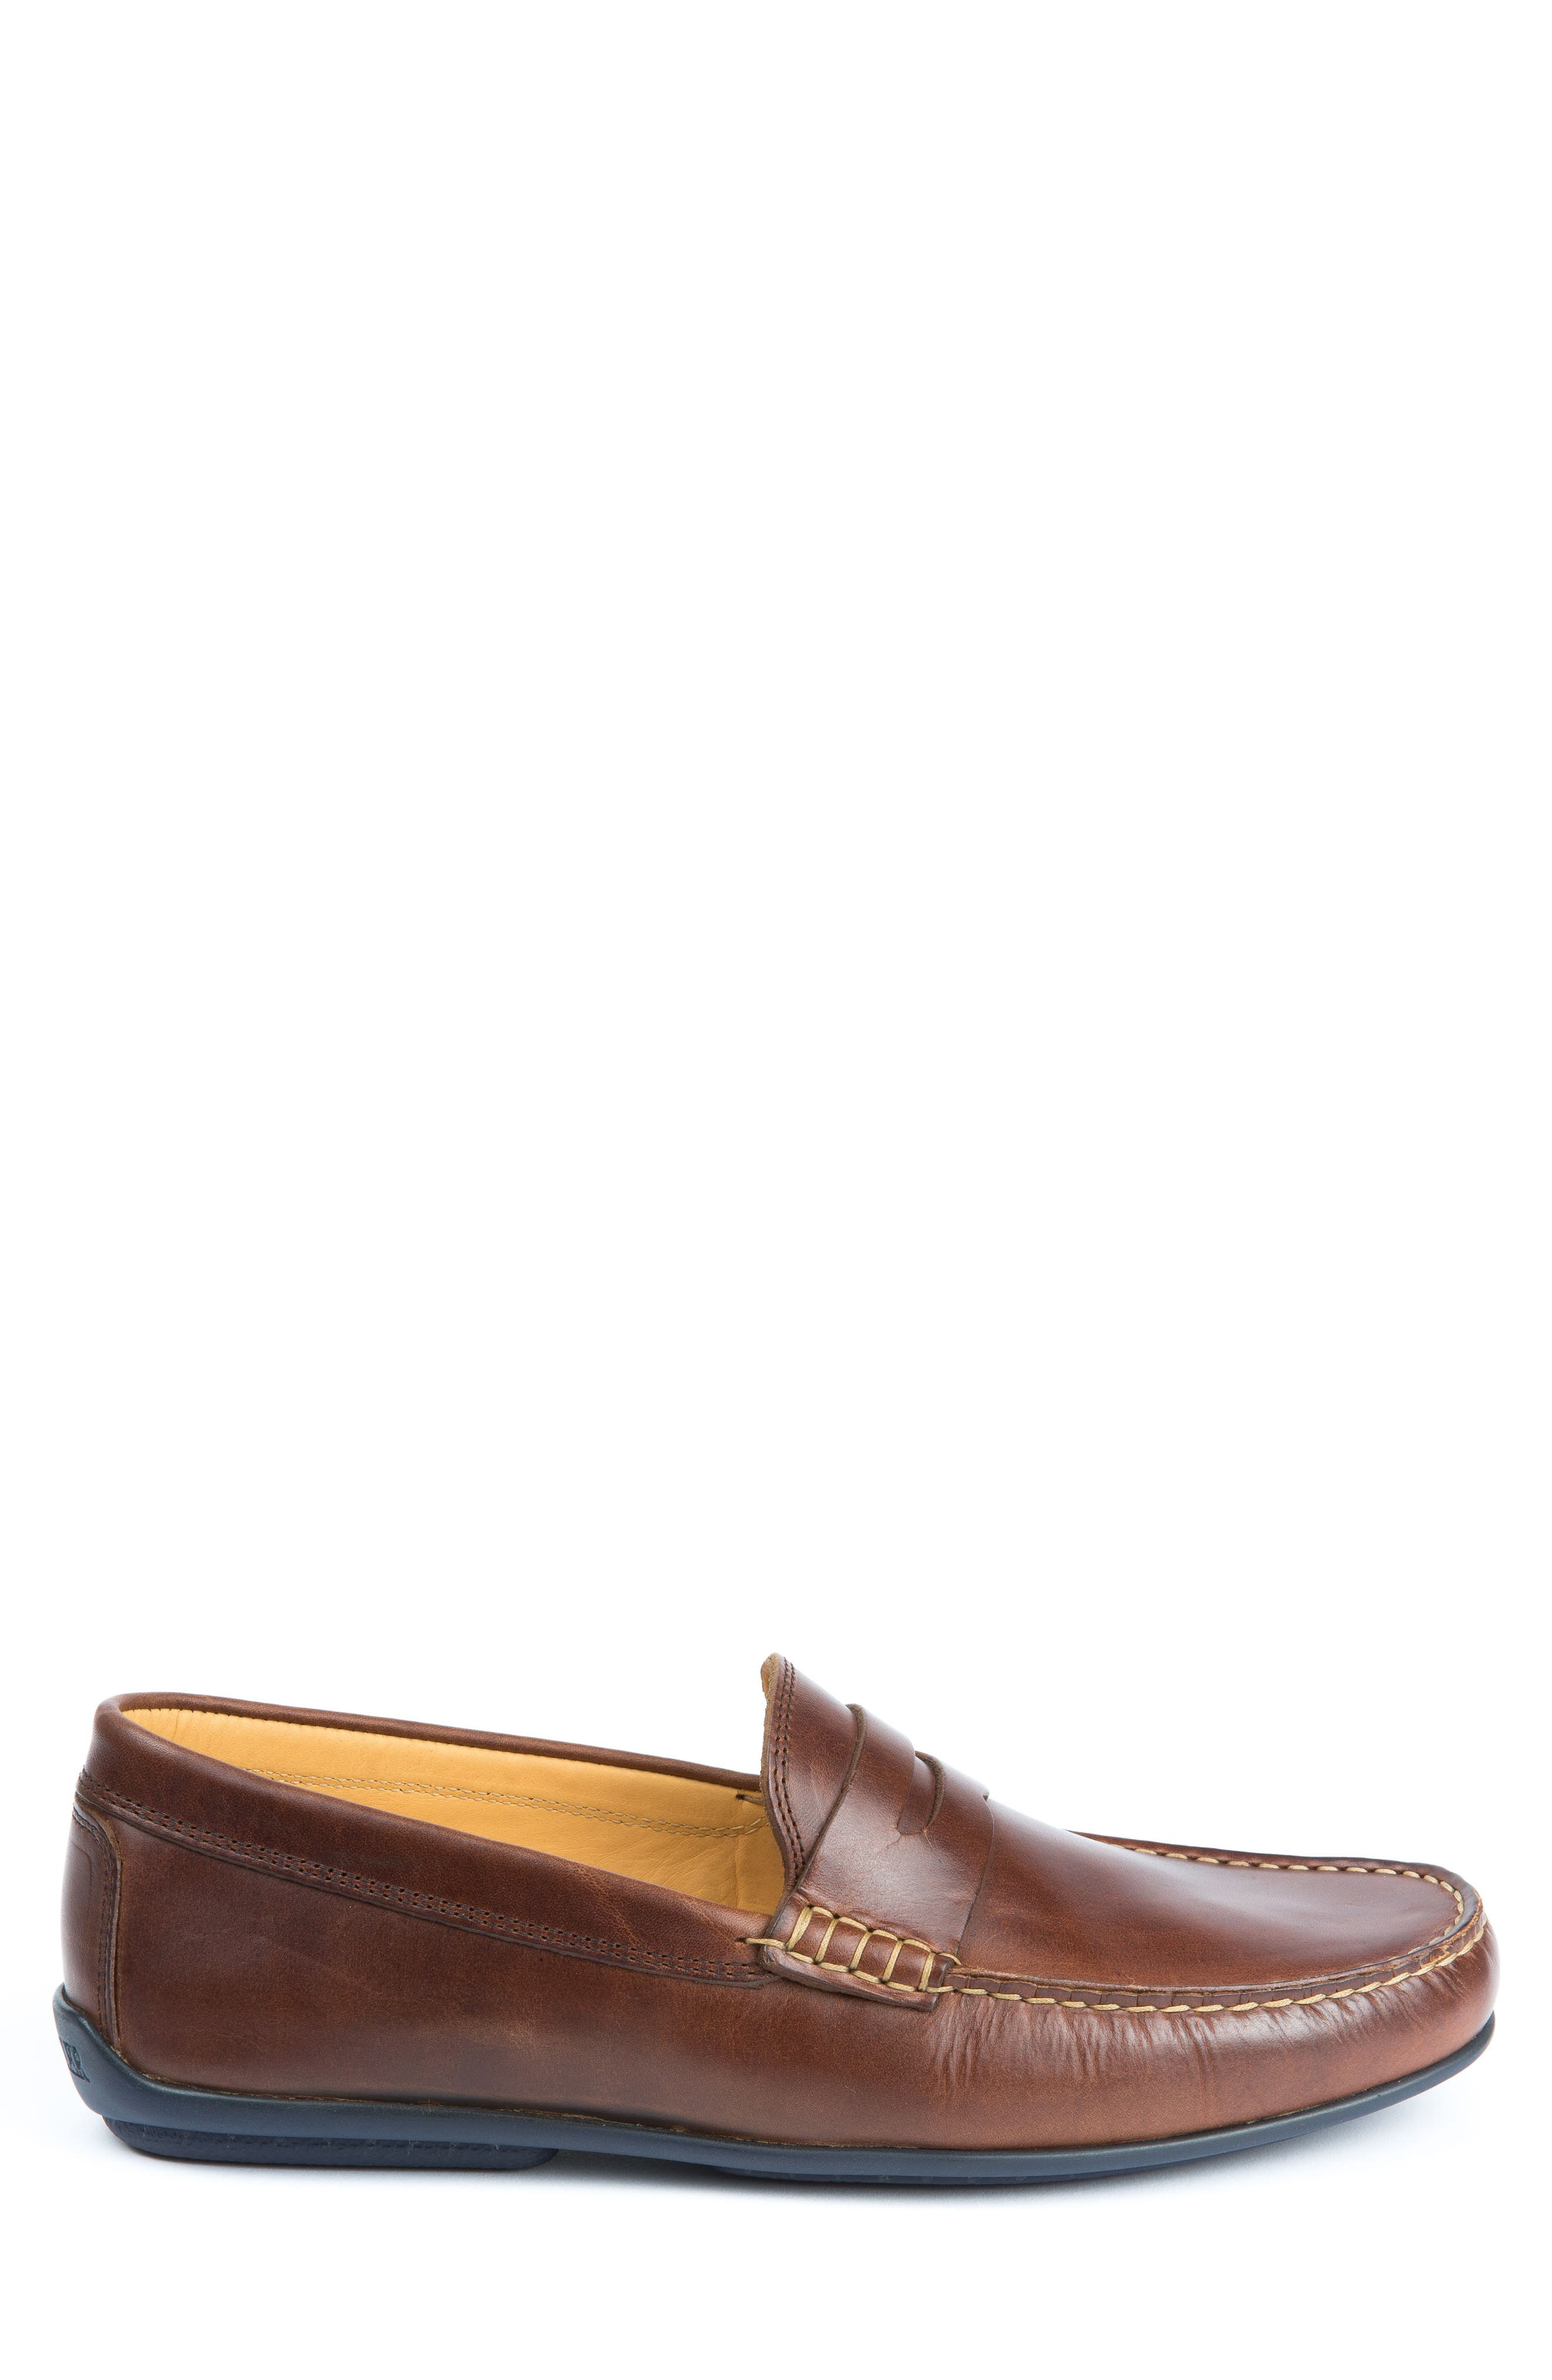 'Clinton' Leather Penny Loafer,                             Alternate thumbnail 3, color,                             LIGHT BROWN